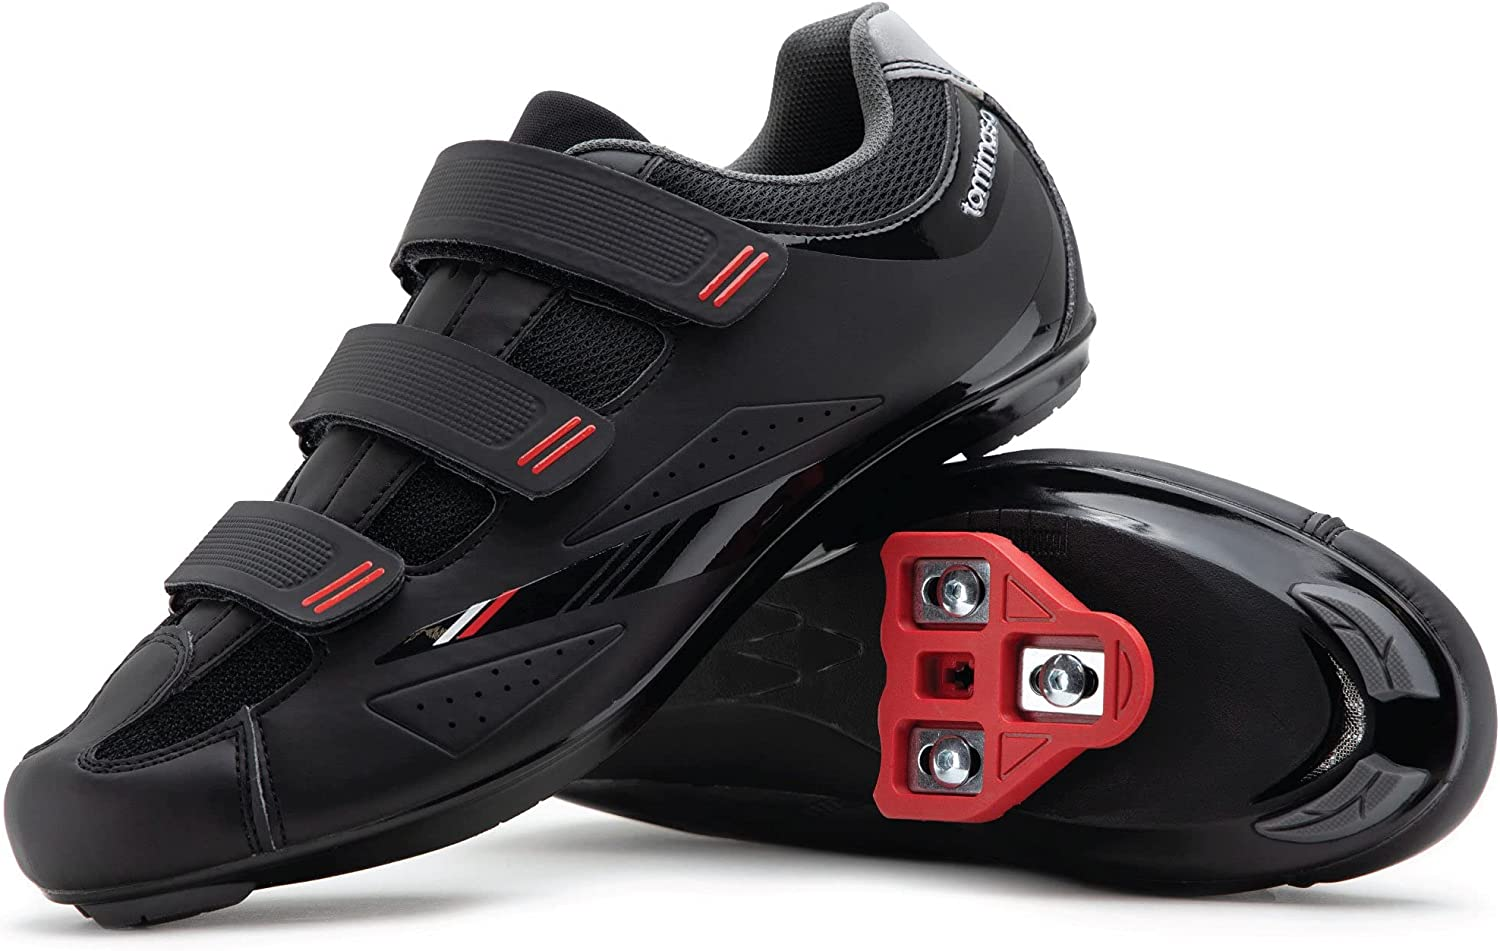 New product type Tommaso Strada 100 Sale special price Dual Cleat Ind Road Bike Touring Compatible